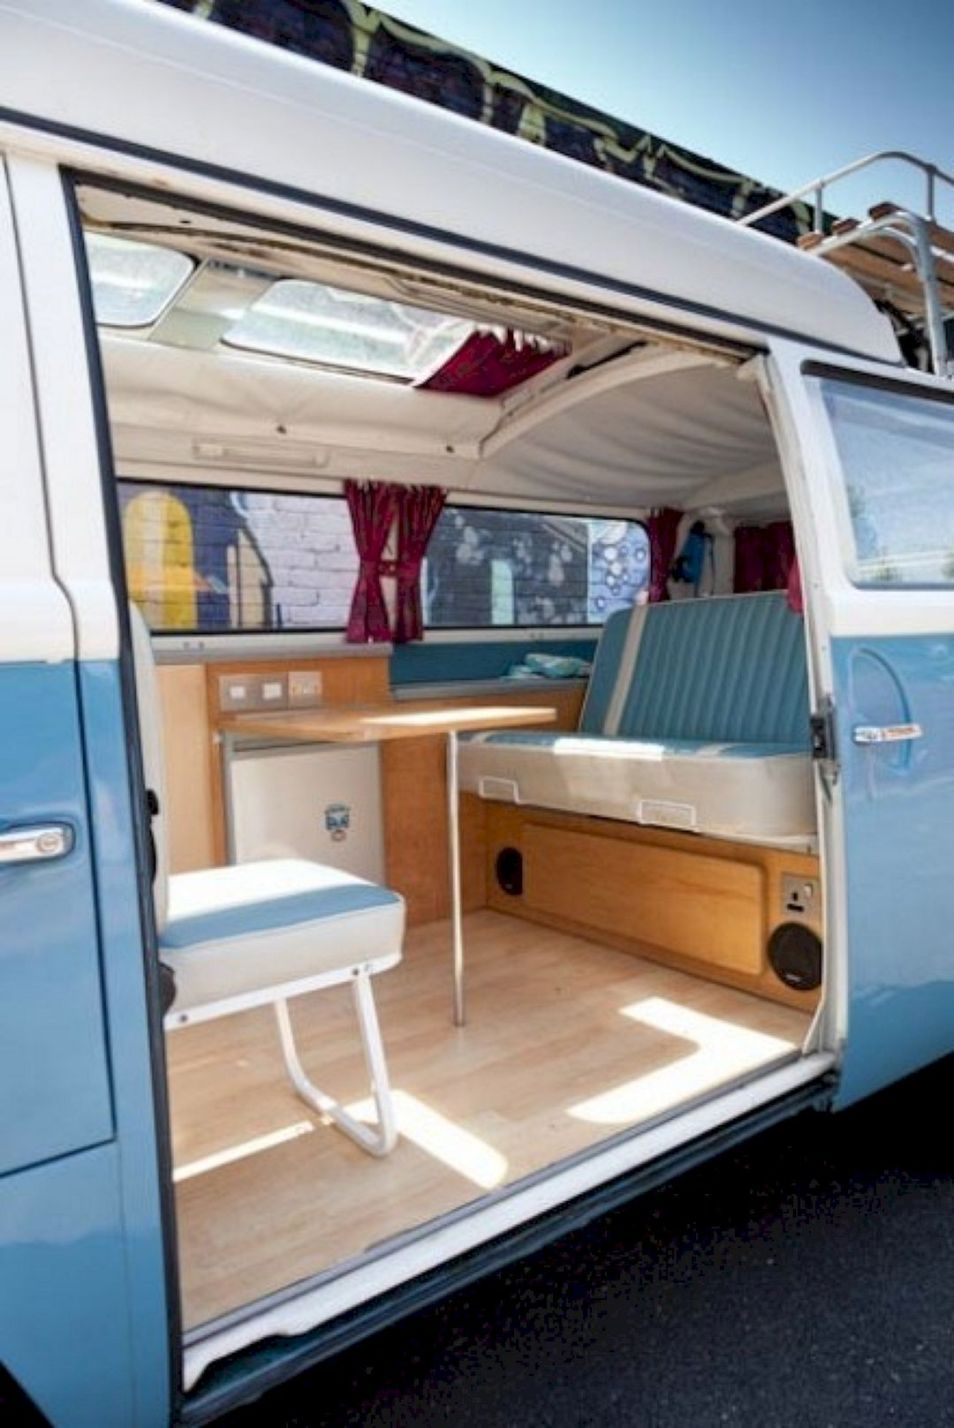 60 Stunning Interior Design Ideas For Camper Van You Can Copy Right